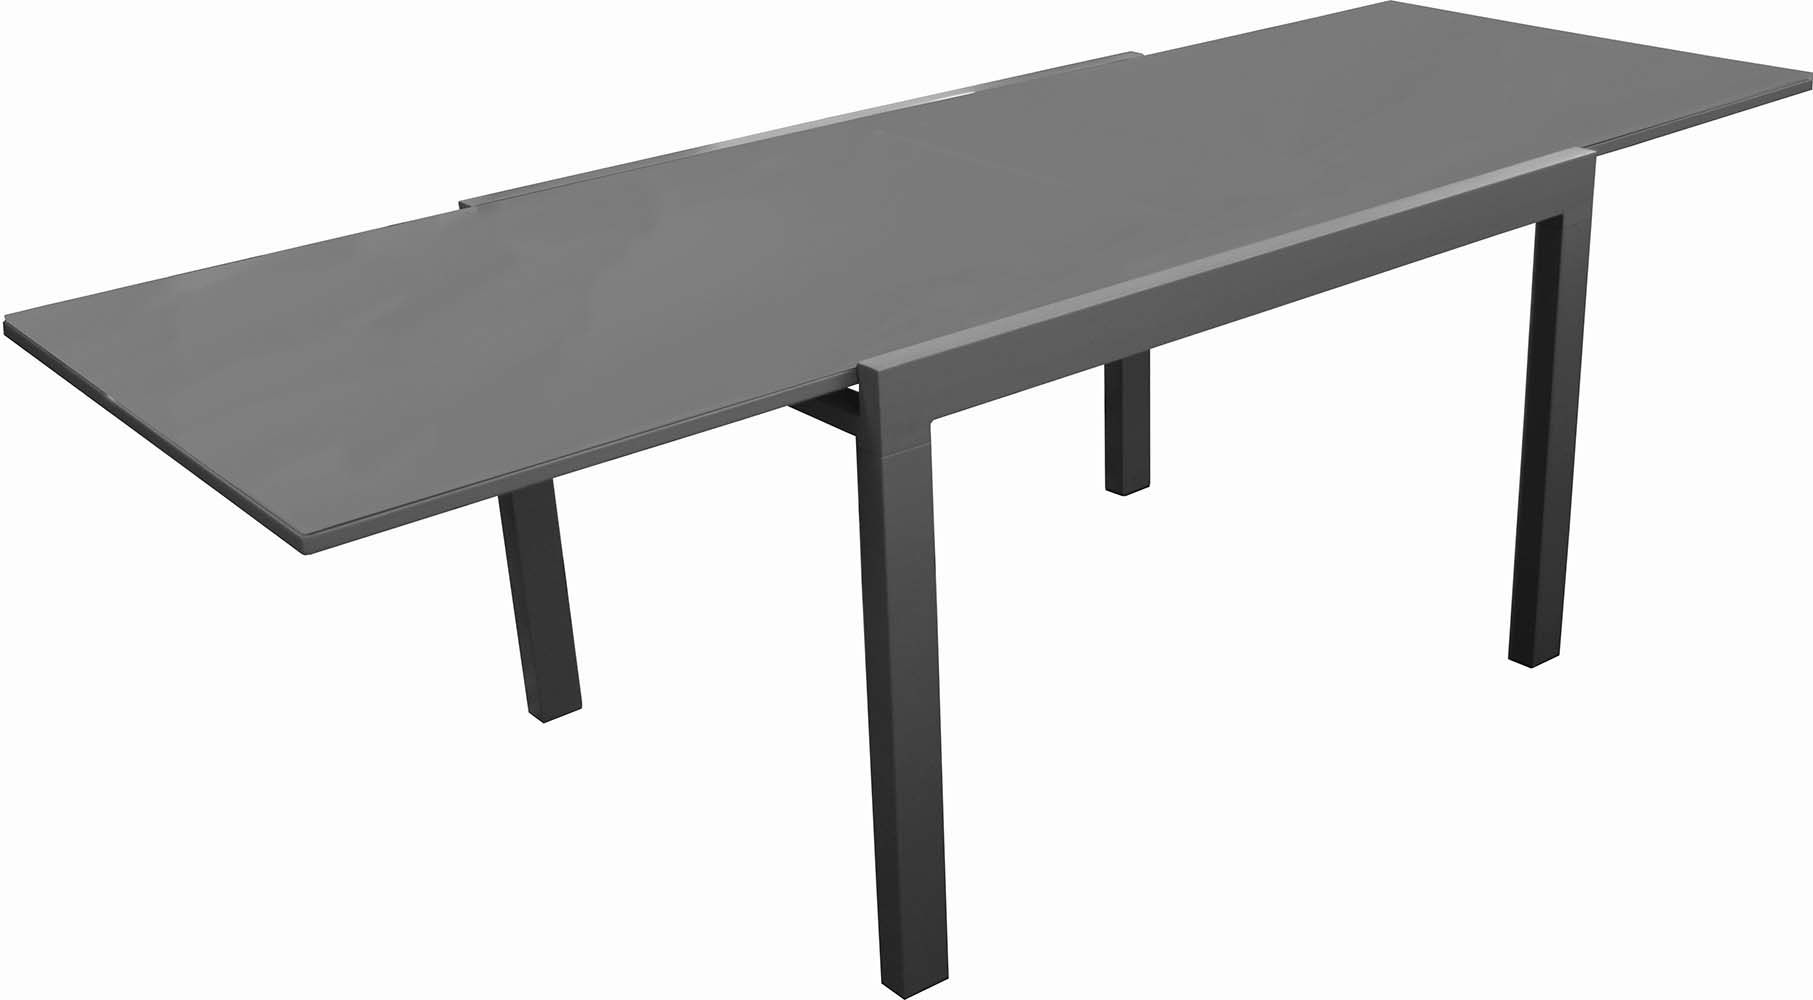 Table en aluminium elise for Table exterieur largeur 60 cm